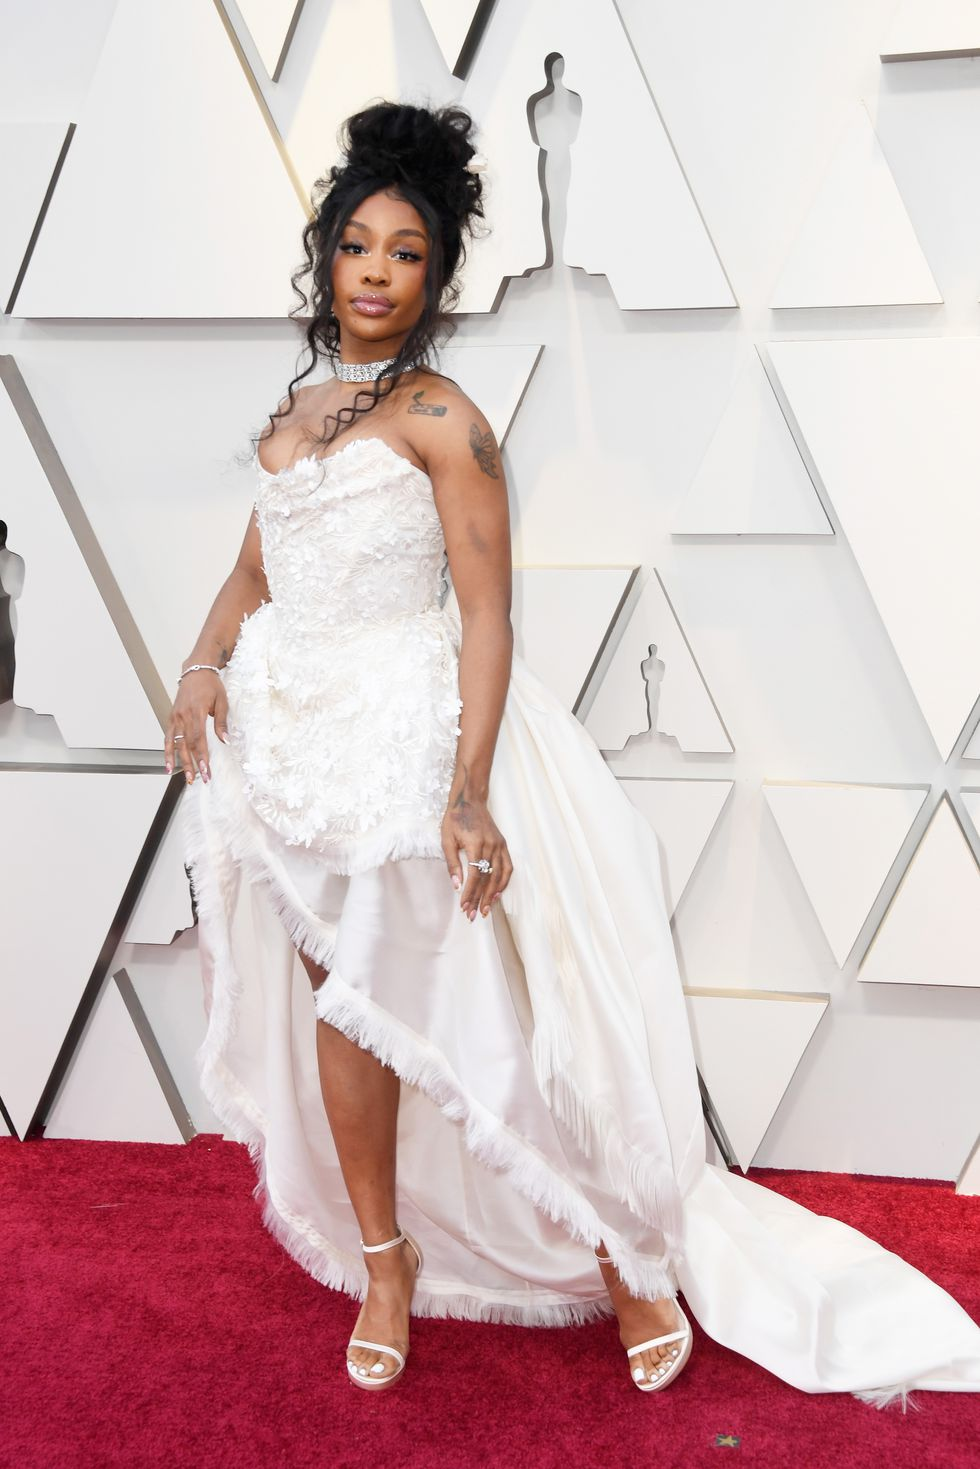 91st OSCARS RED CARPET 2019 SZA.jpg